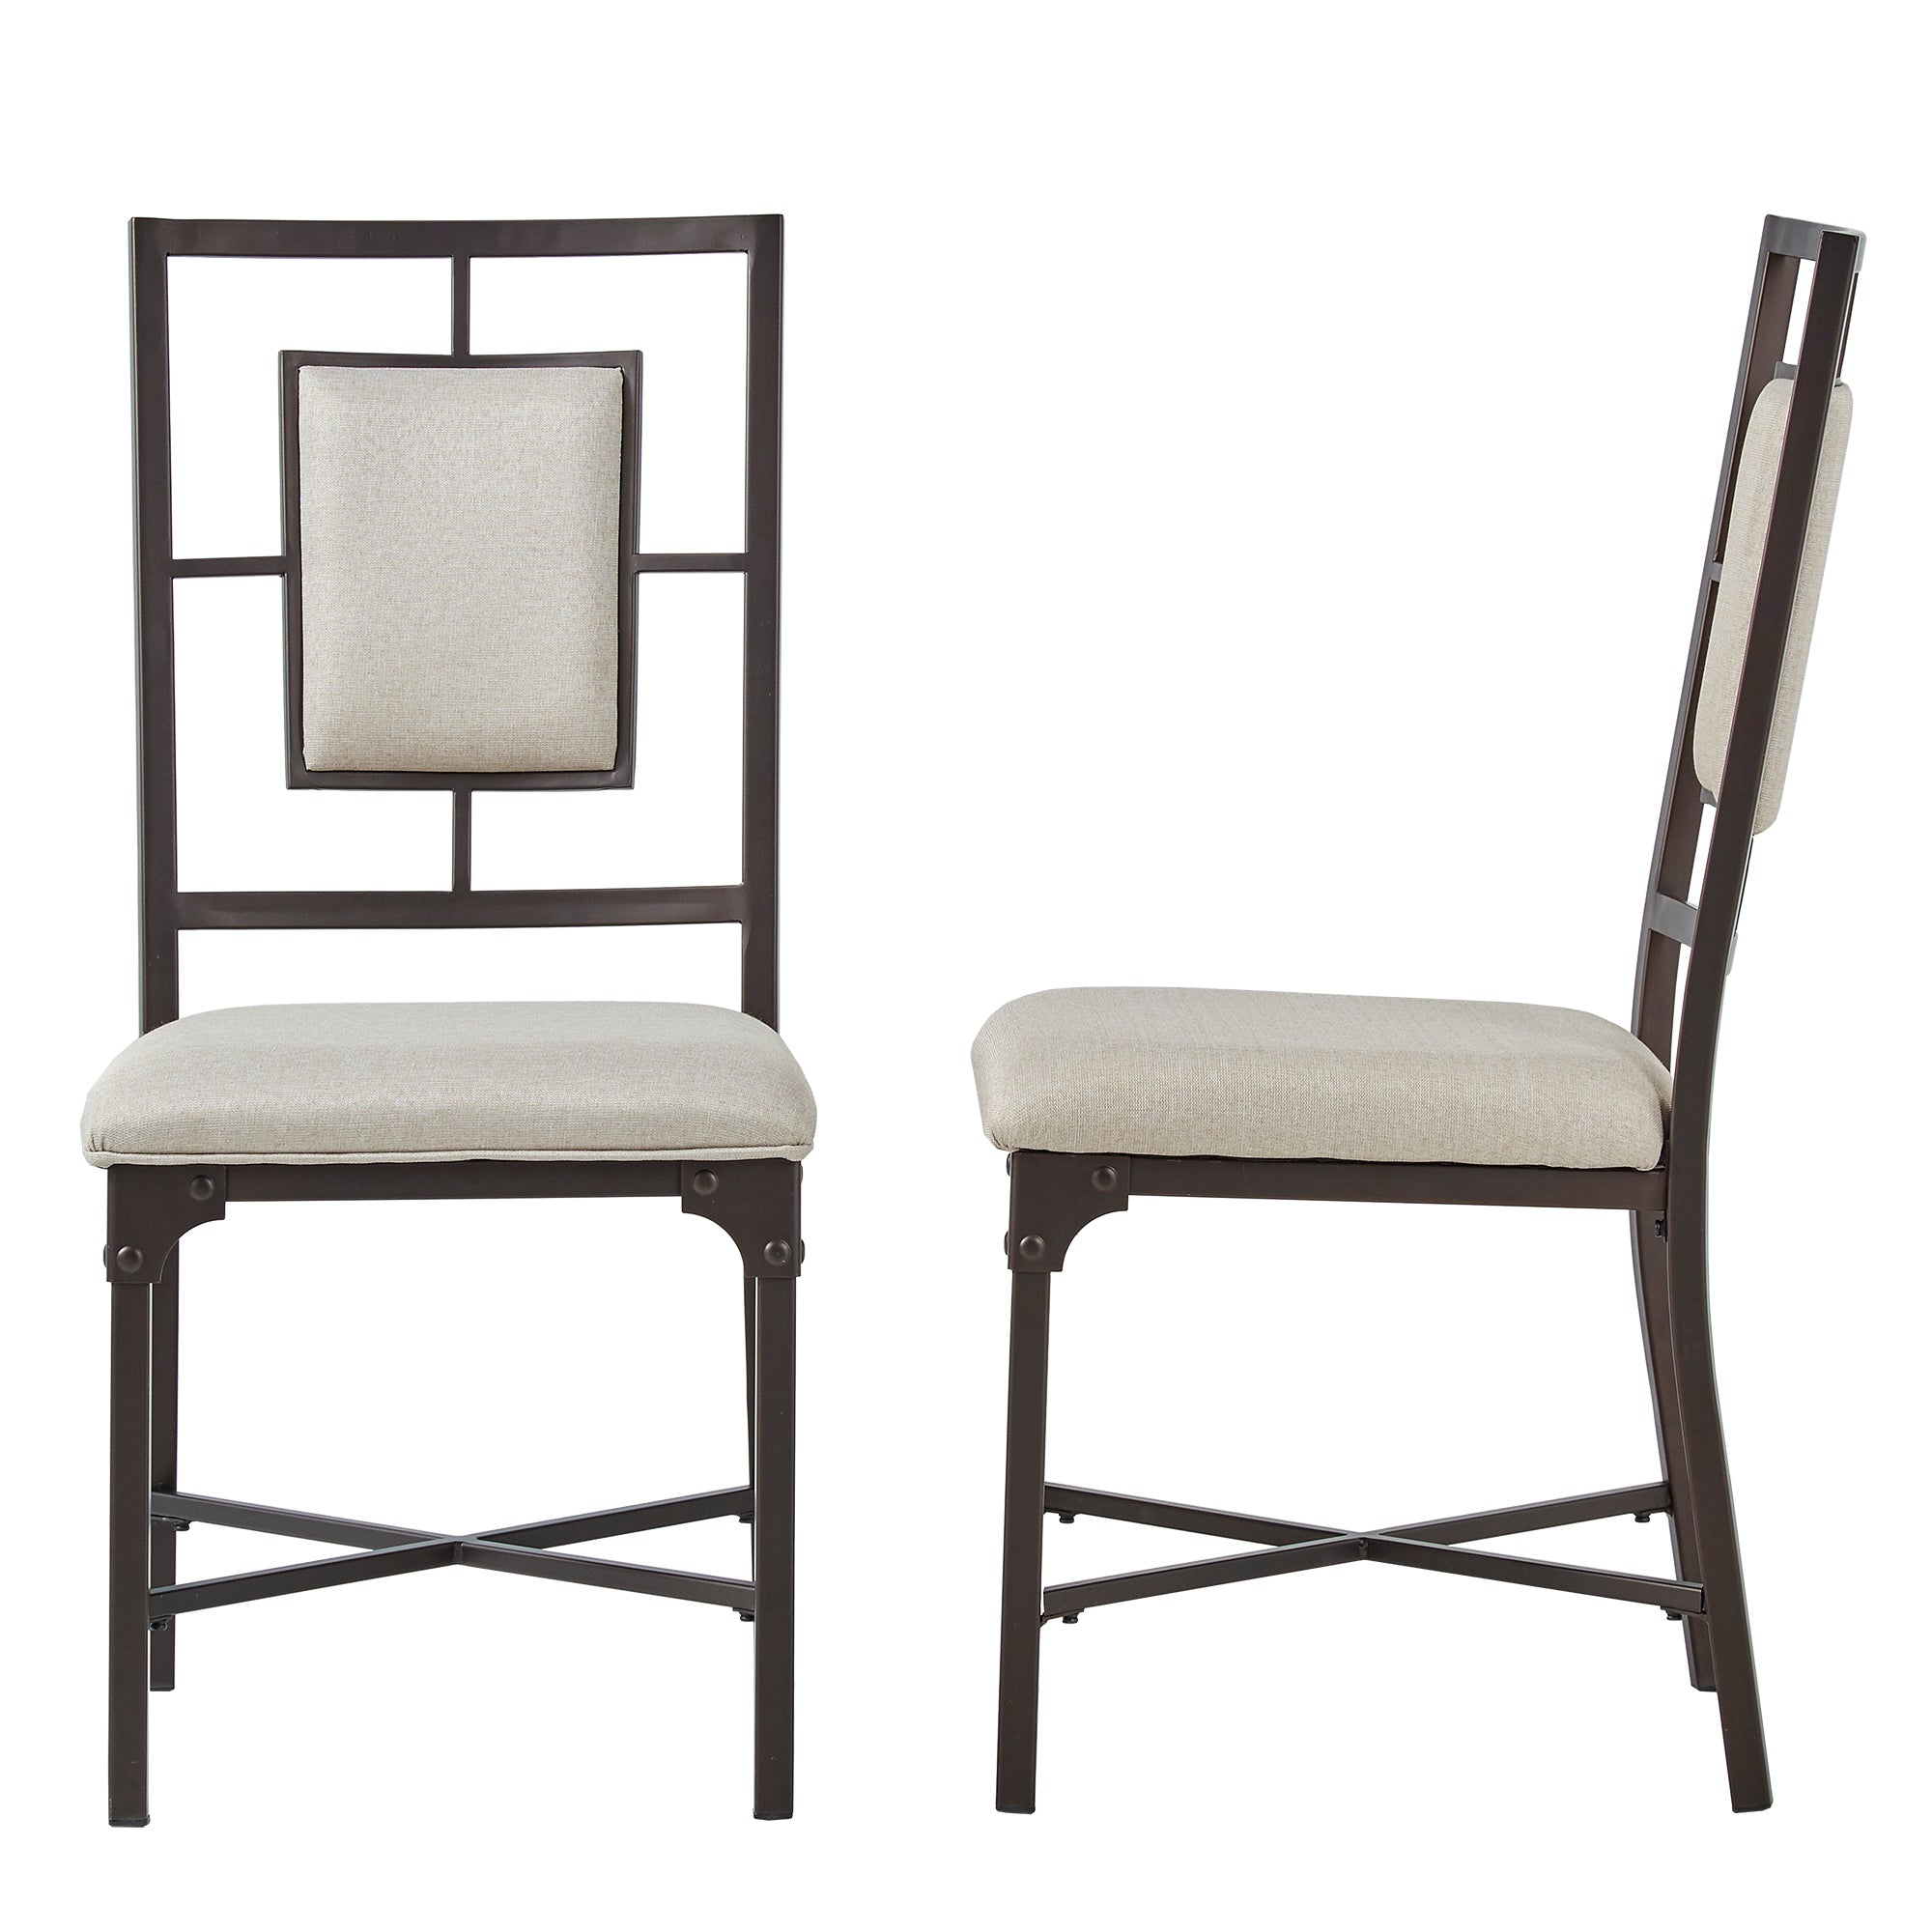 Bronze Industrial Dining Chairs (Set of 2)